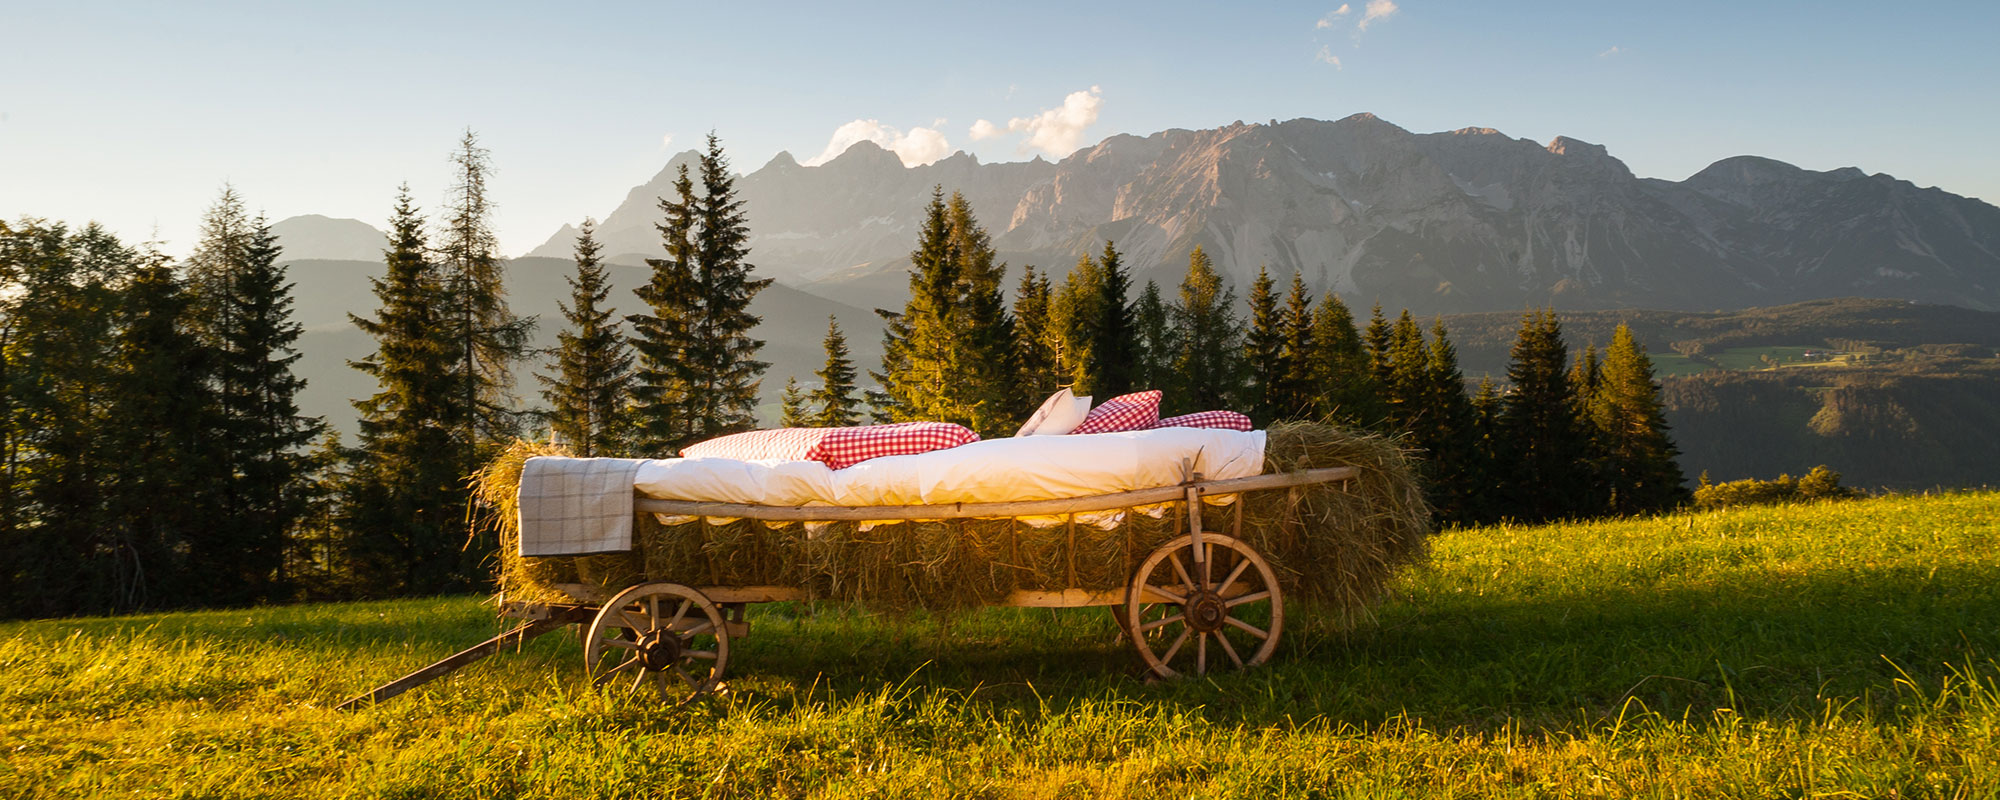 Spend a night in the hay cart, the special